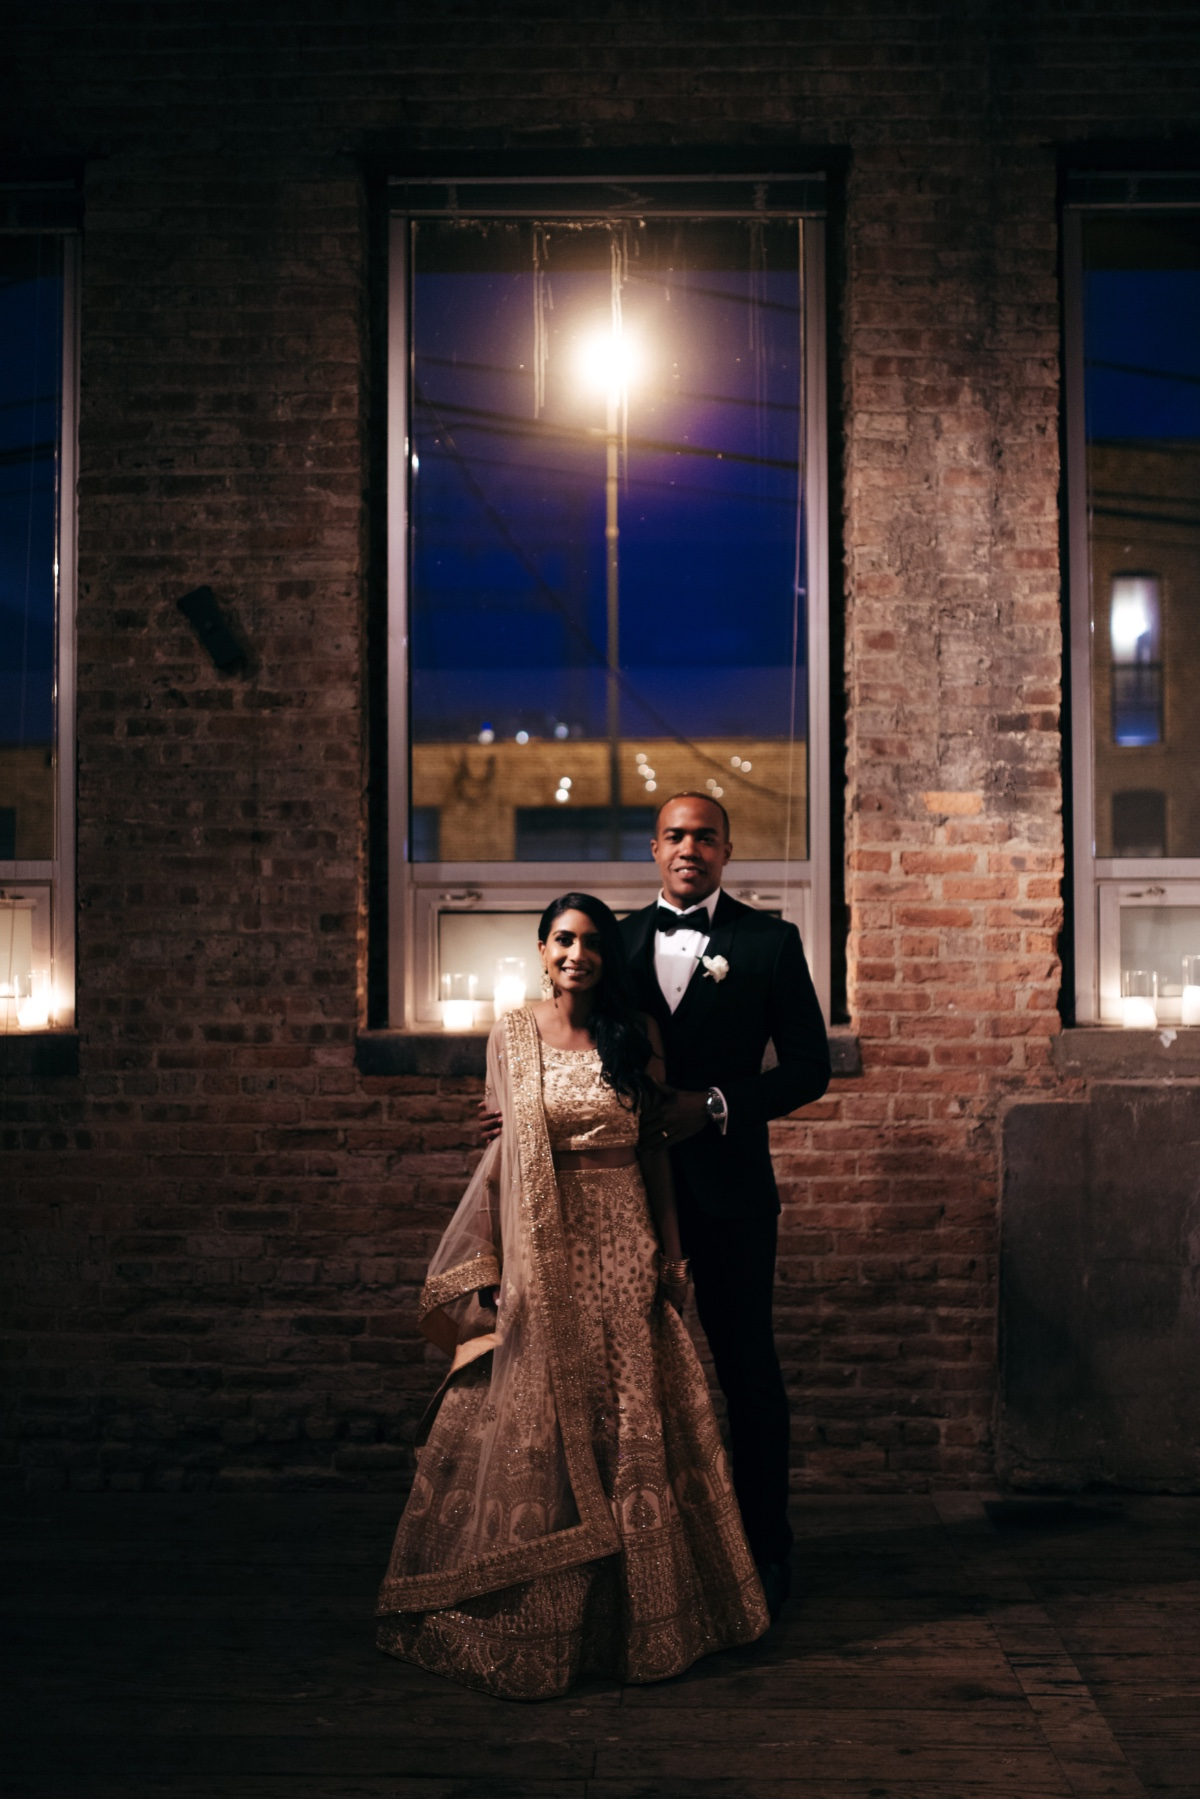 Romantic Meets Industrial: A Modern Multicultural Wedding